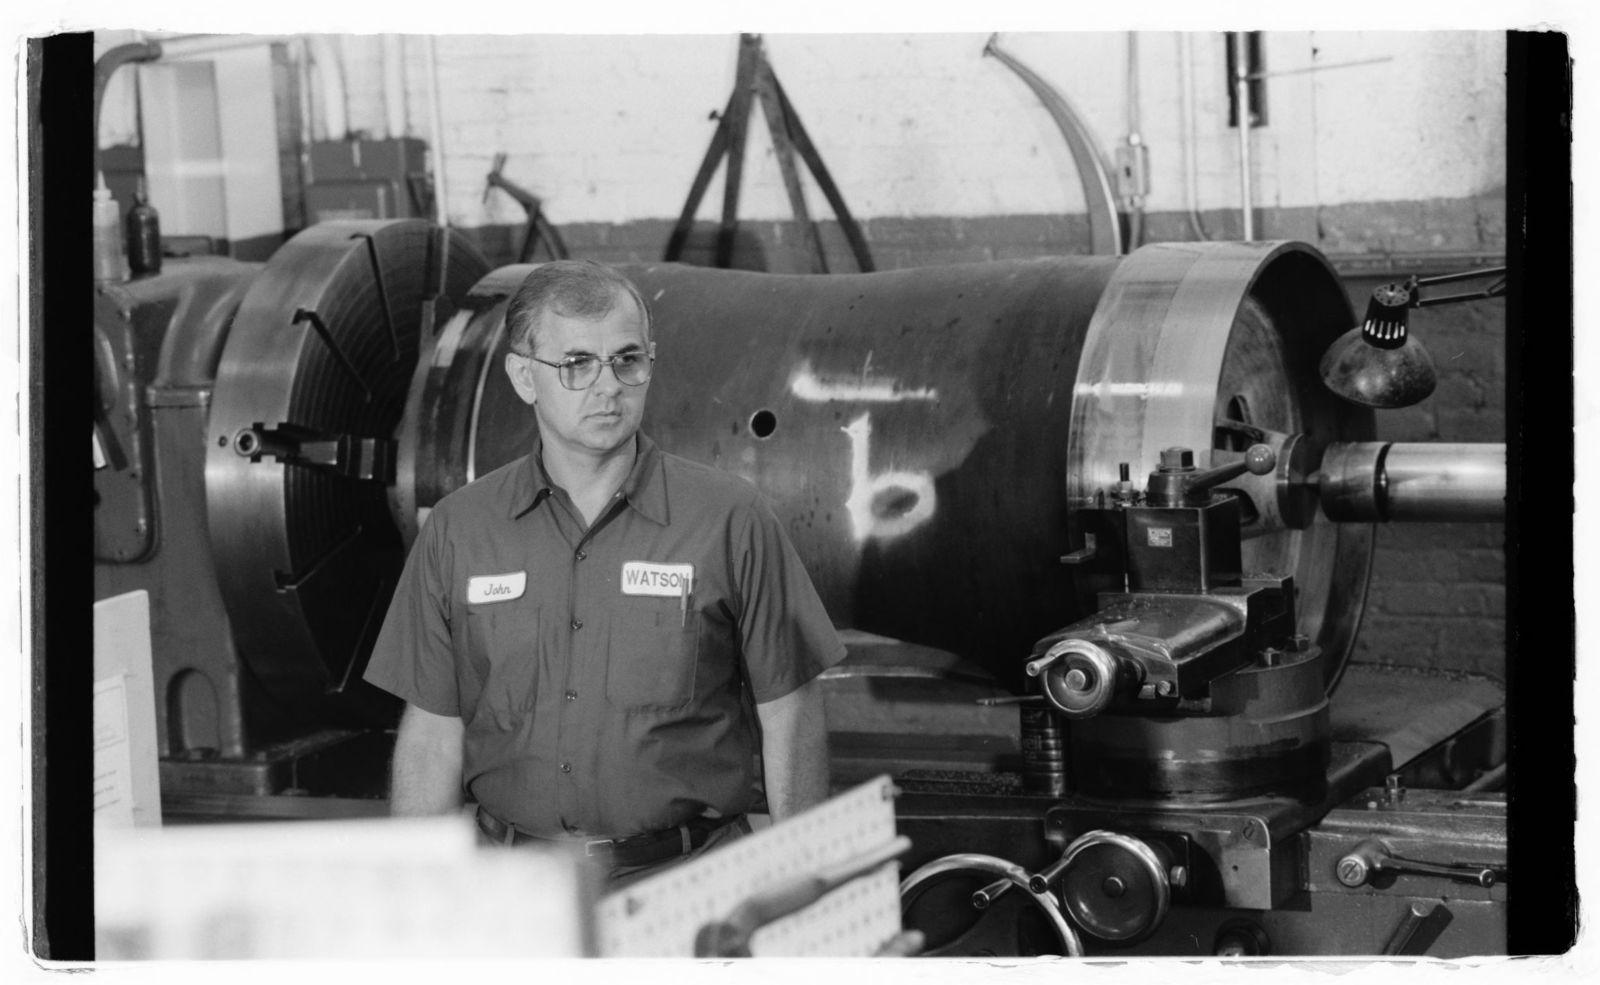 [Machinist Jan Sudol on shop floor at Watson Machine International.]